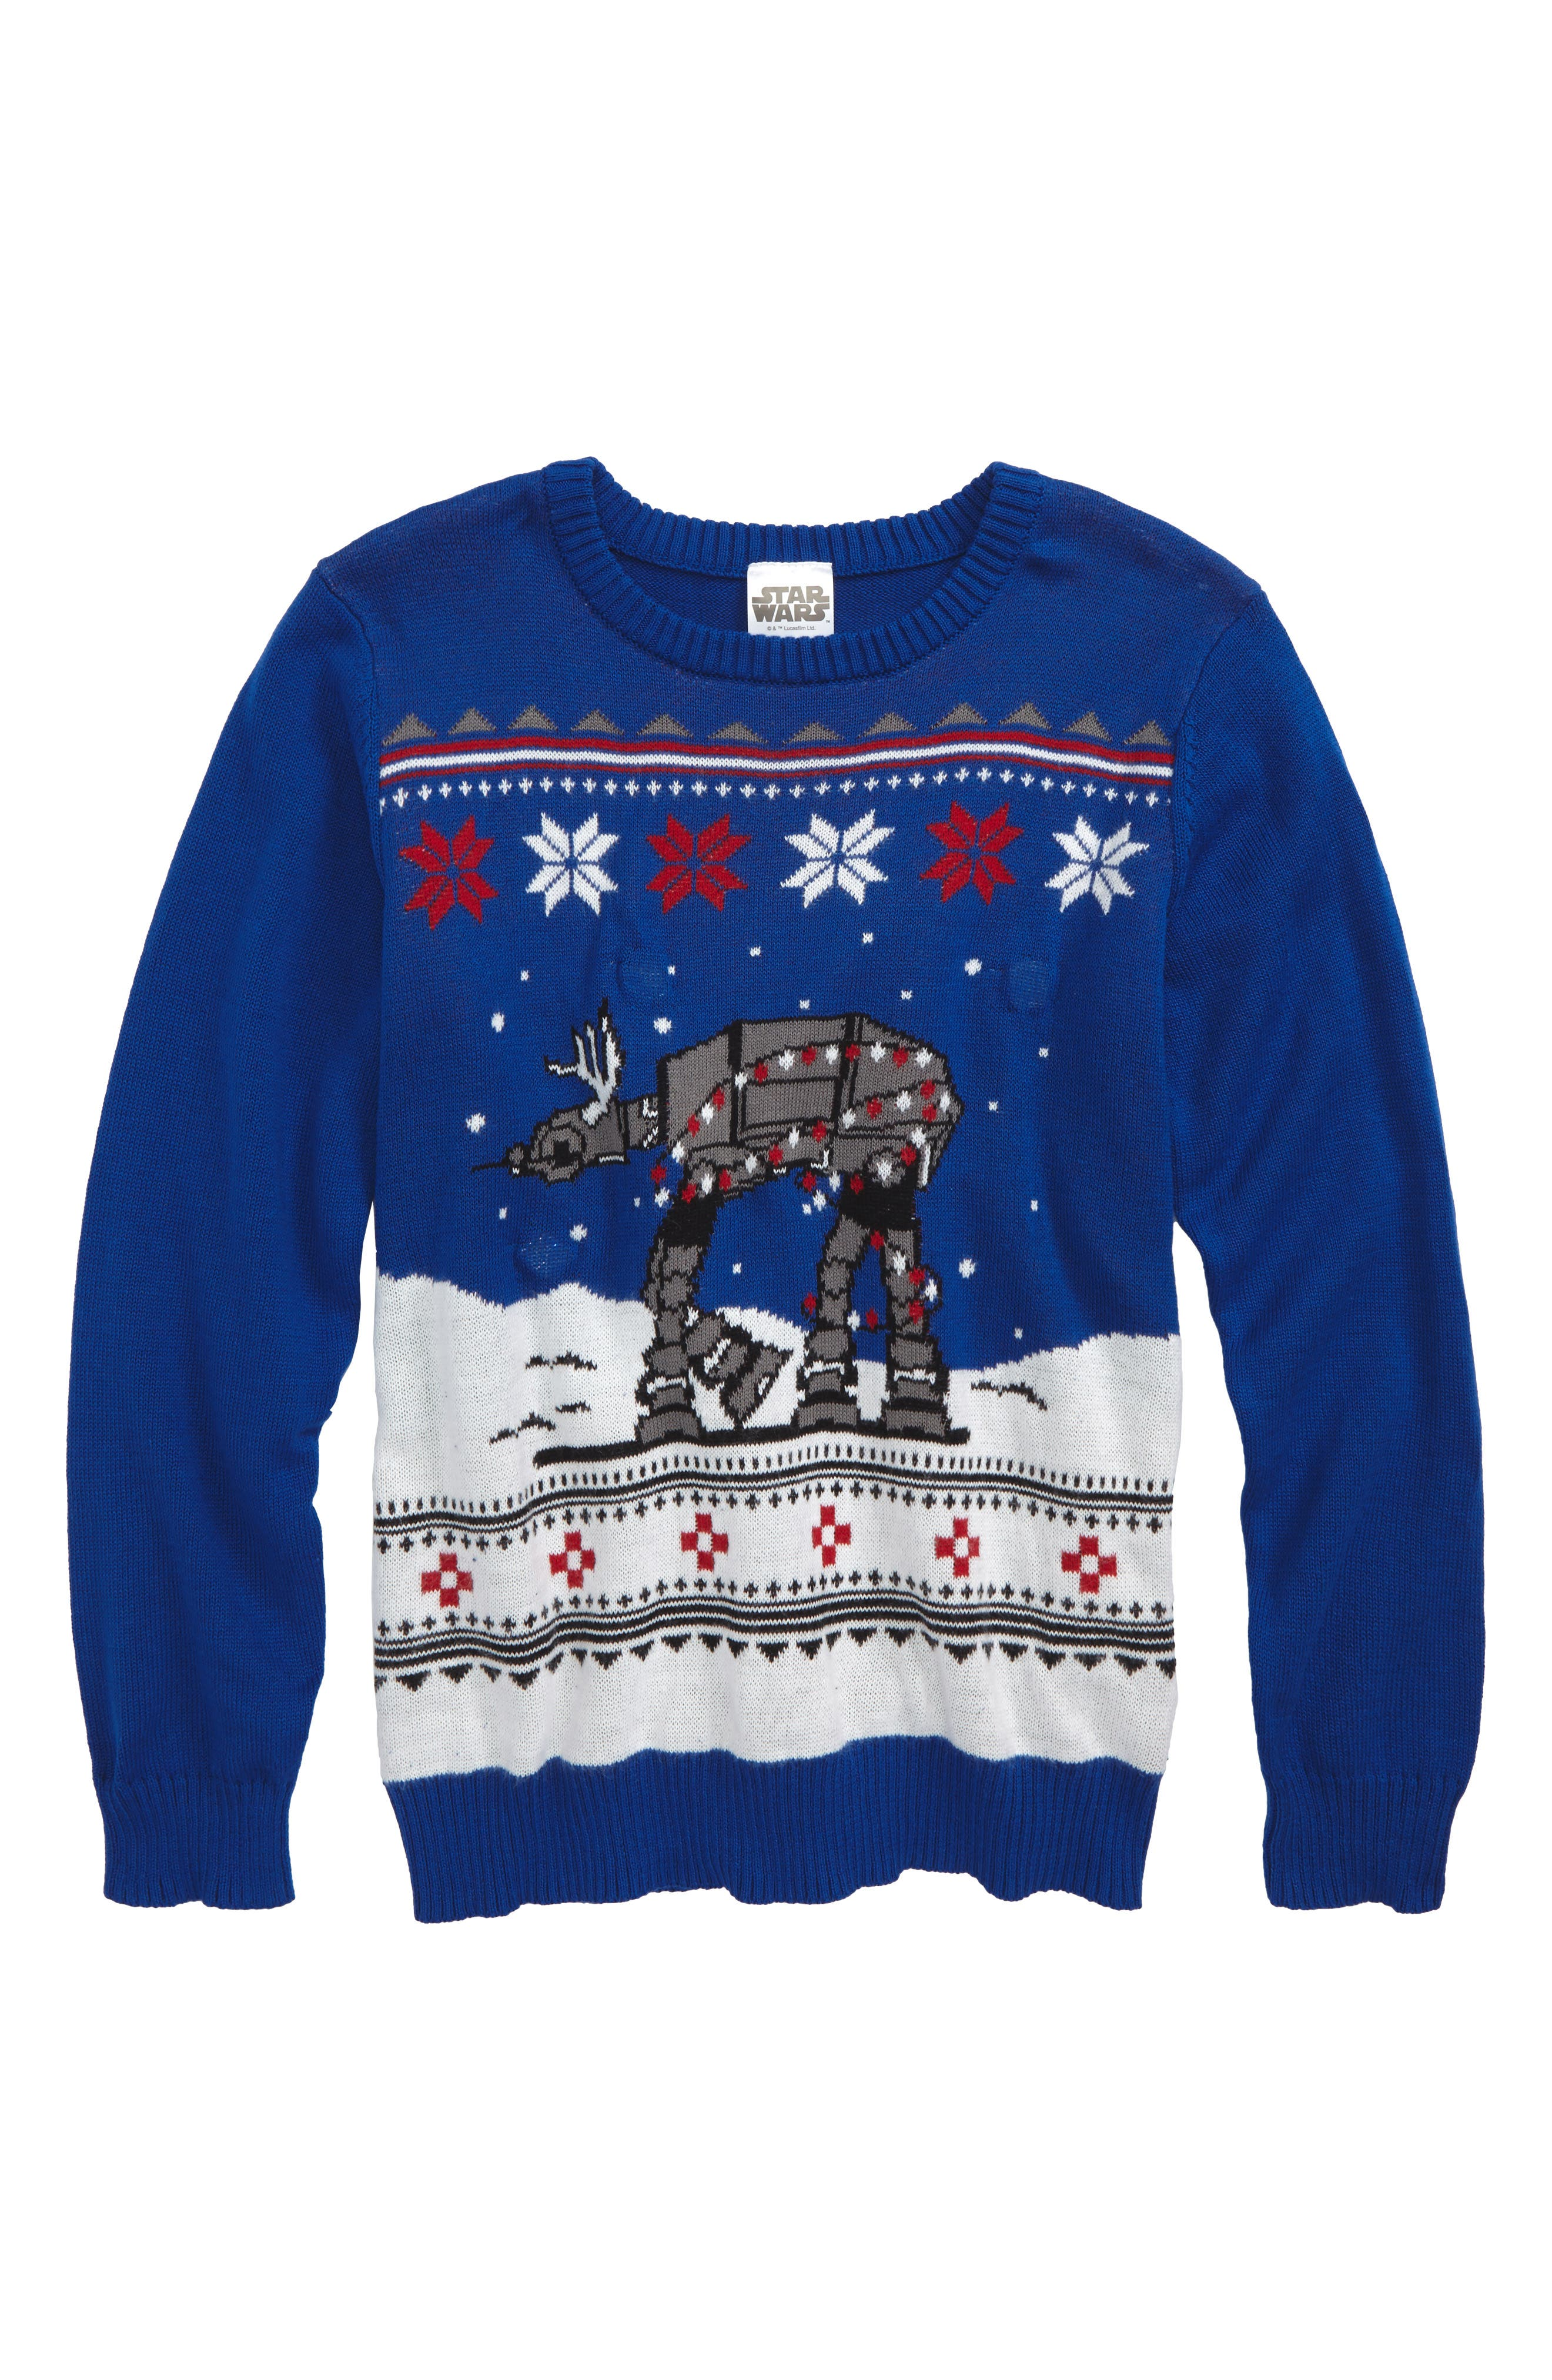 Jem Star Wars™ Light-Up Holiday Sweater (Toddler Boys, Little Boys & Big Boys)